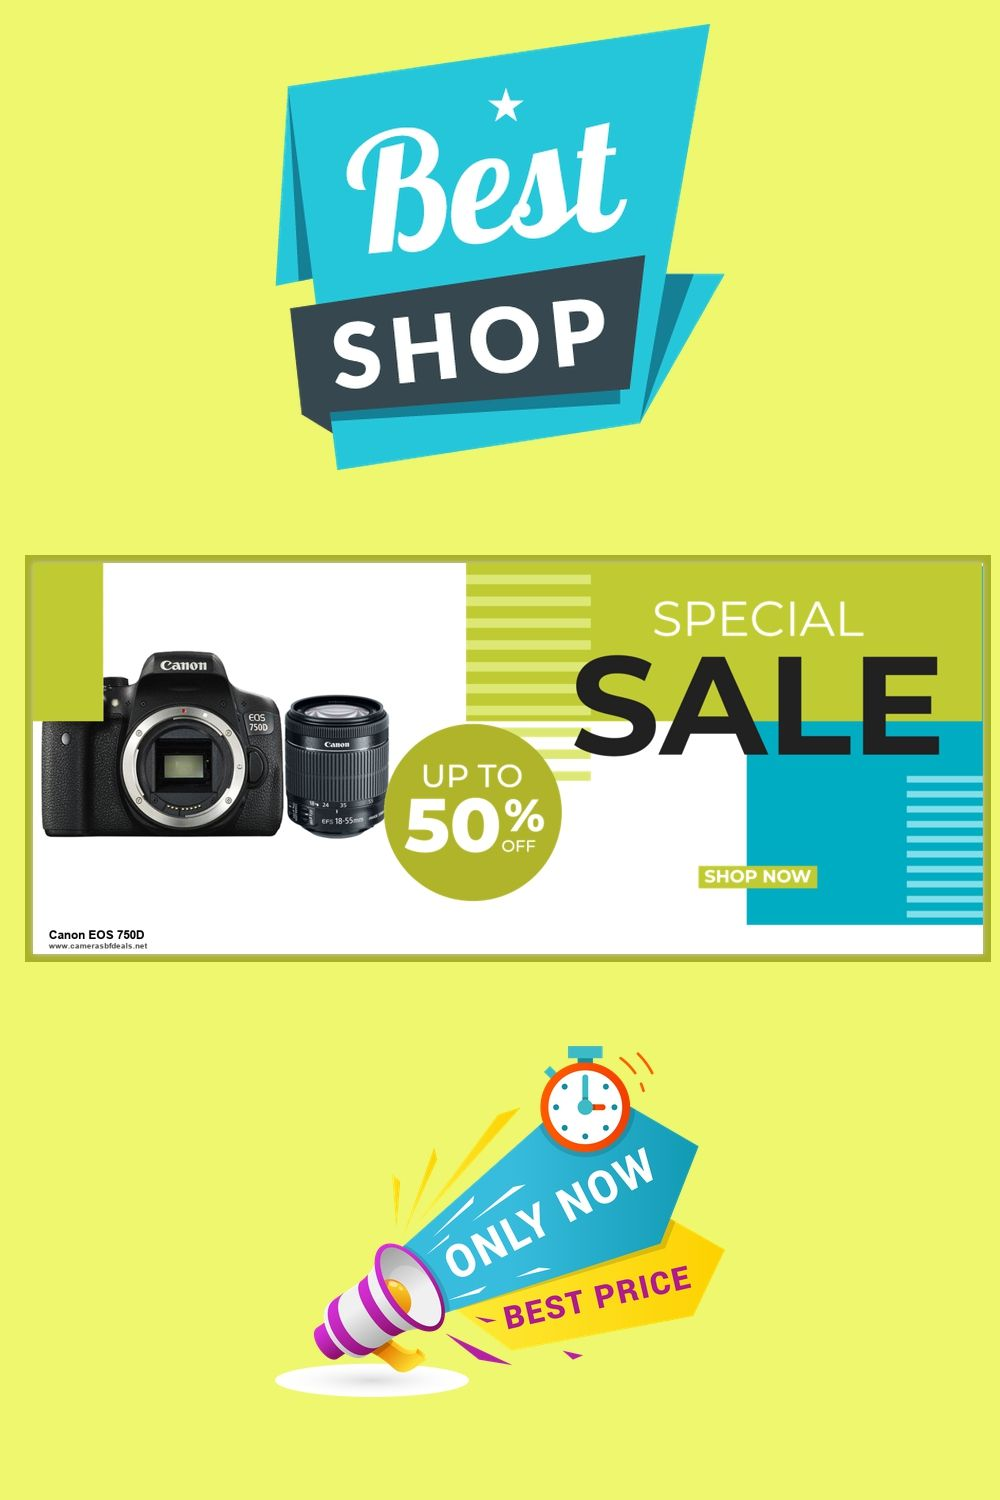 5 Best Canon Eos 750d Black Friday Deals Up To 30 Discount 2020 In 2020 Black Friday Camera Canon Eos Eos